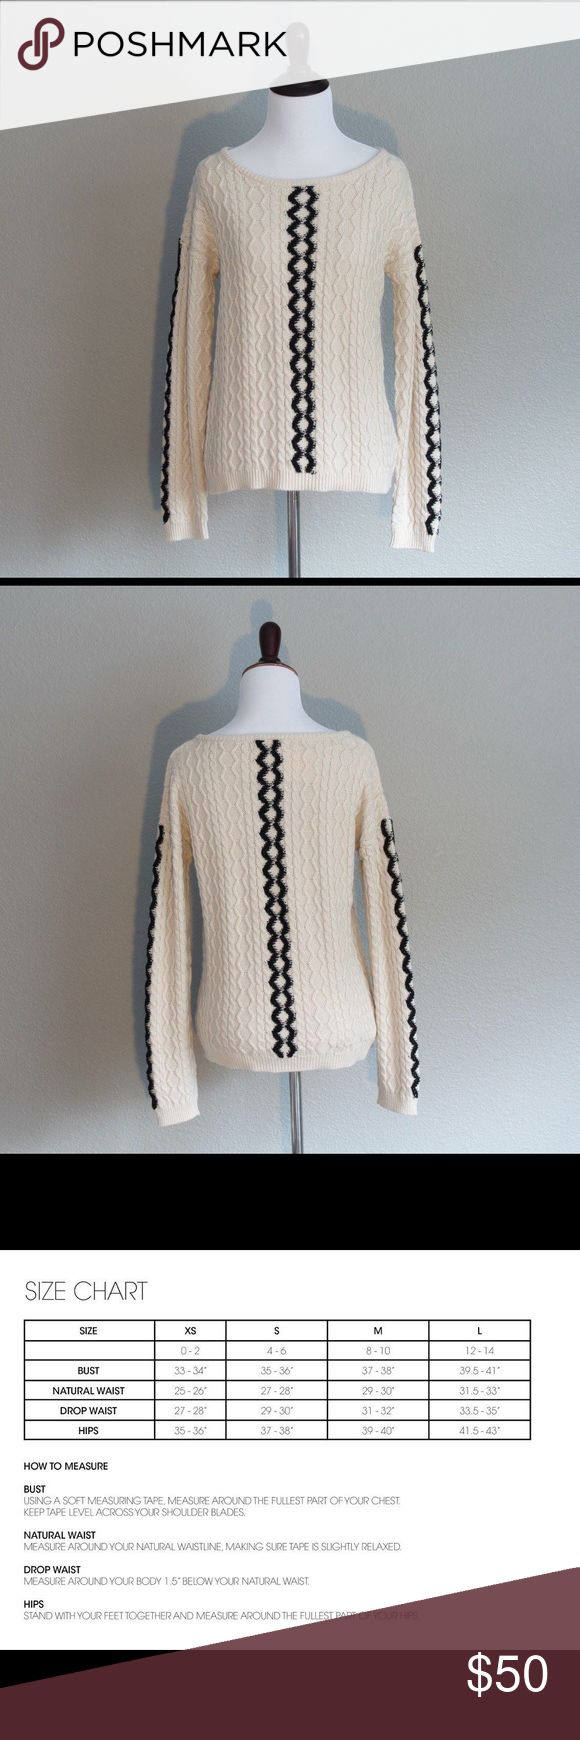 die besten 25 stores like anthropologie ideen auf pinterest nwt stacy chang crochet knit cream black sweater stacy chang s fashion collections have been sold at stores like anthropologie and off fifth